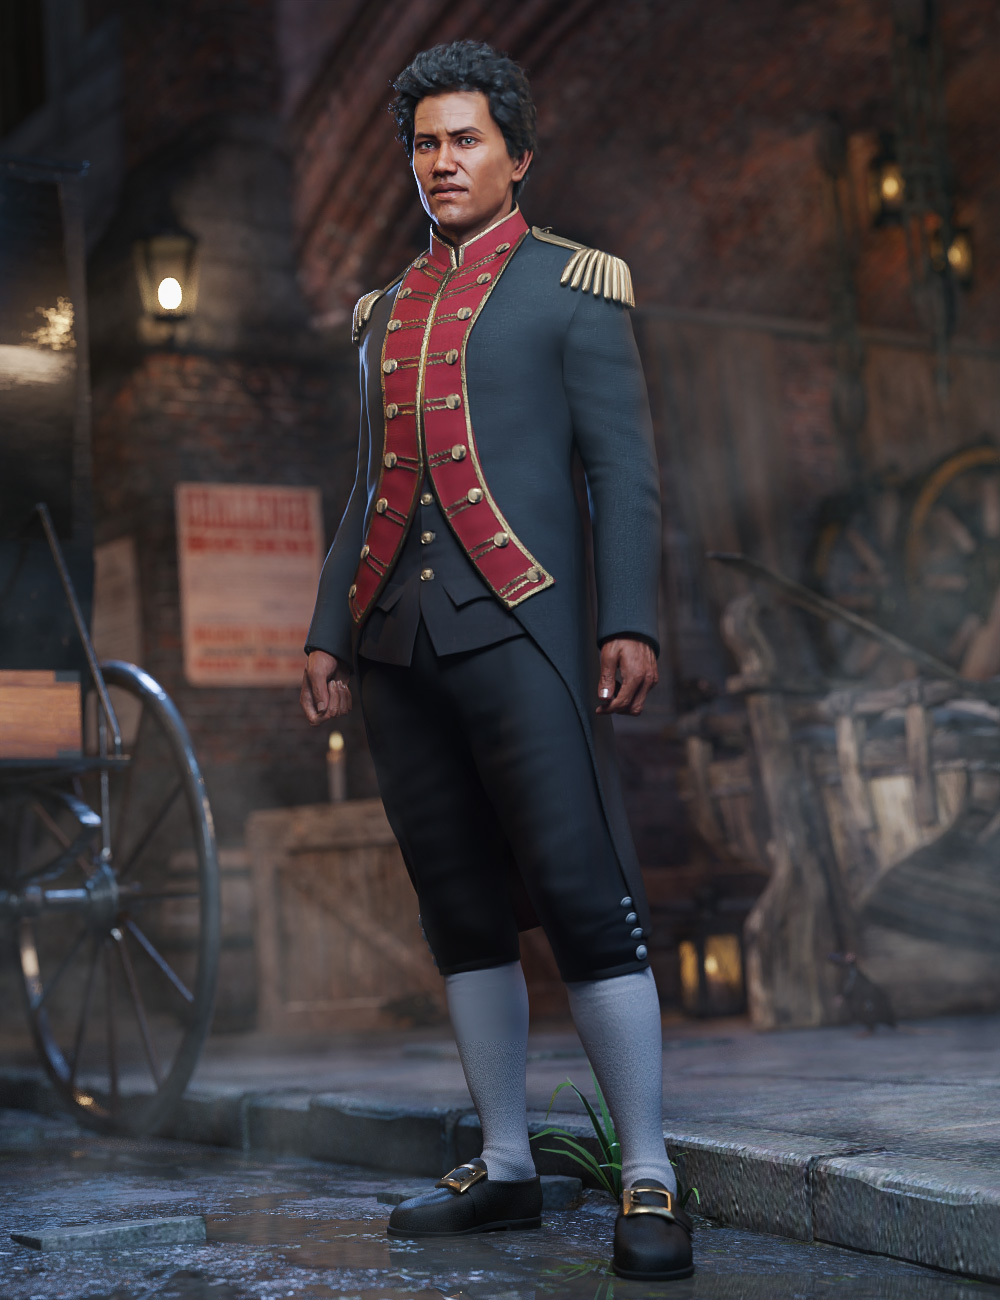 dForce Naval Uniform for Genesis 8 Male(s) by: MadaMoonscape GraphicsSade, 3D Models by Daz 3D